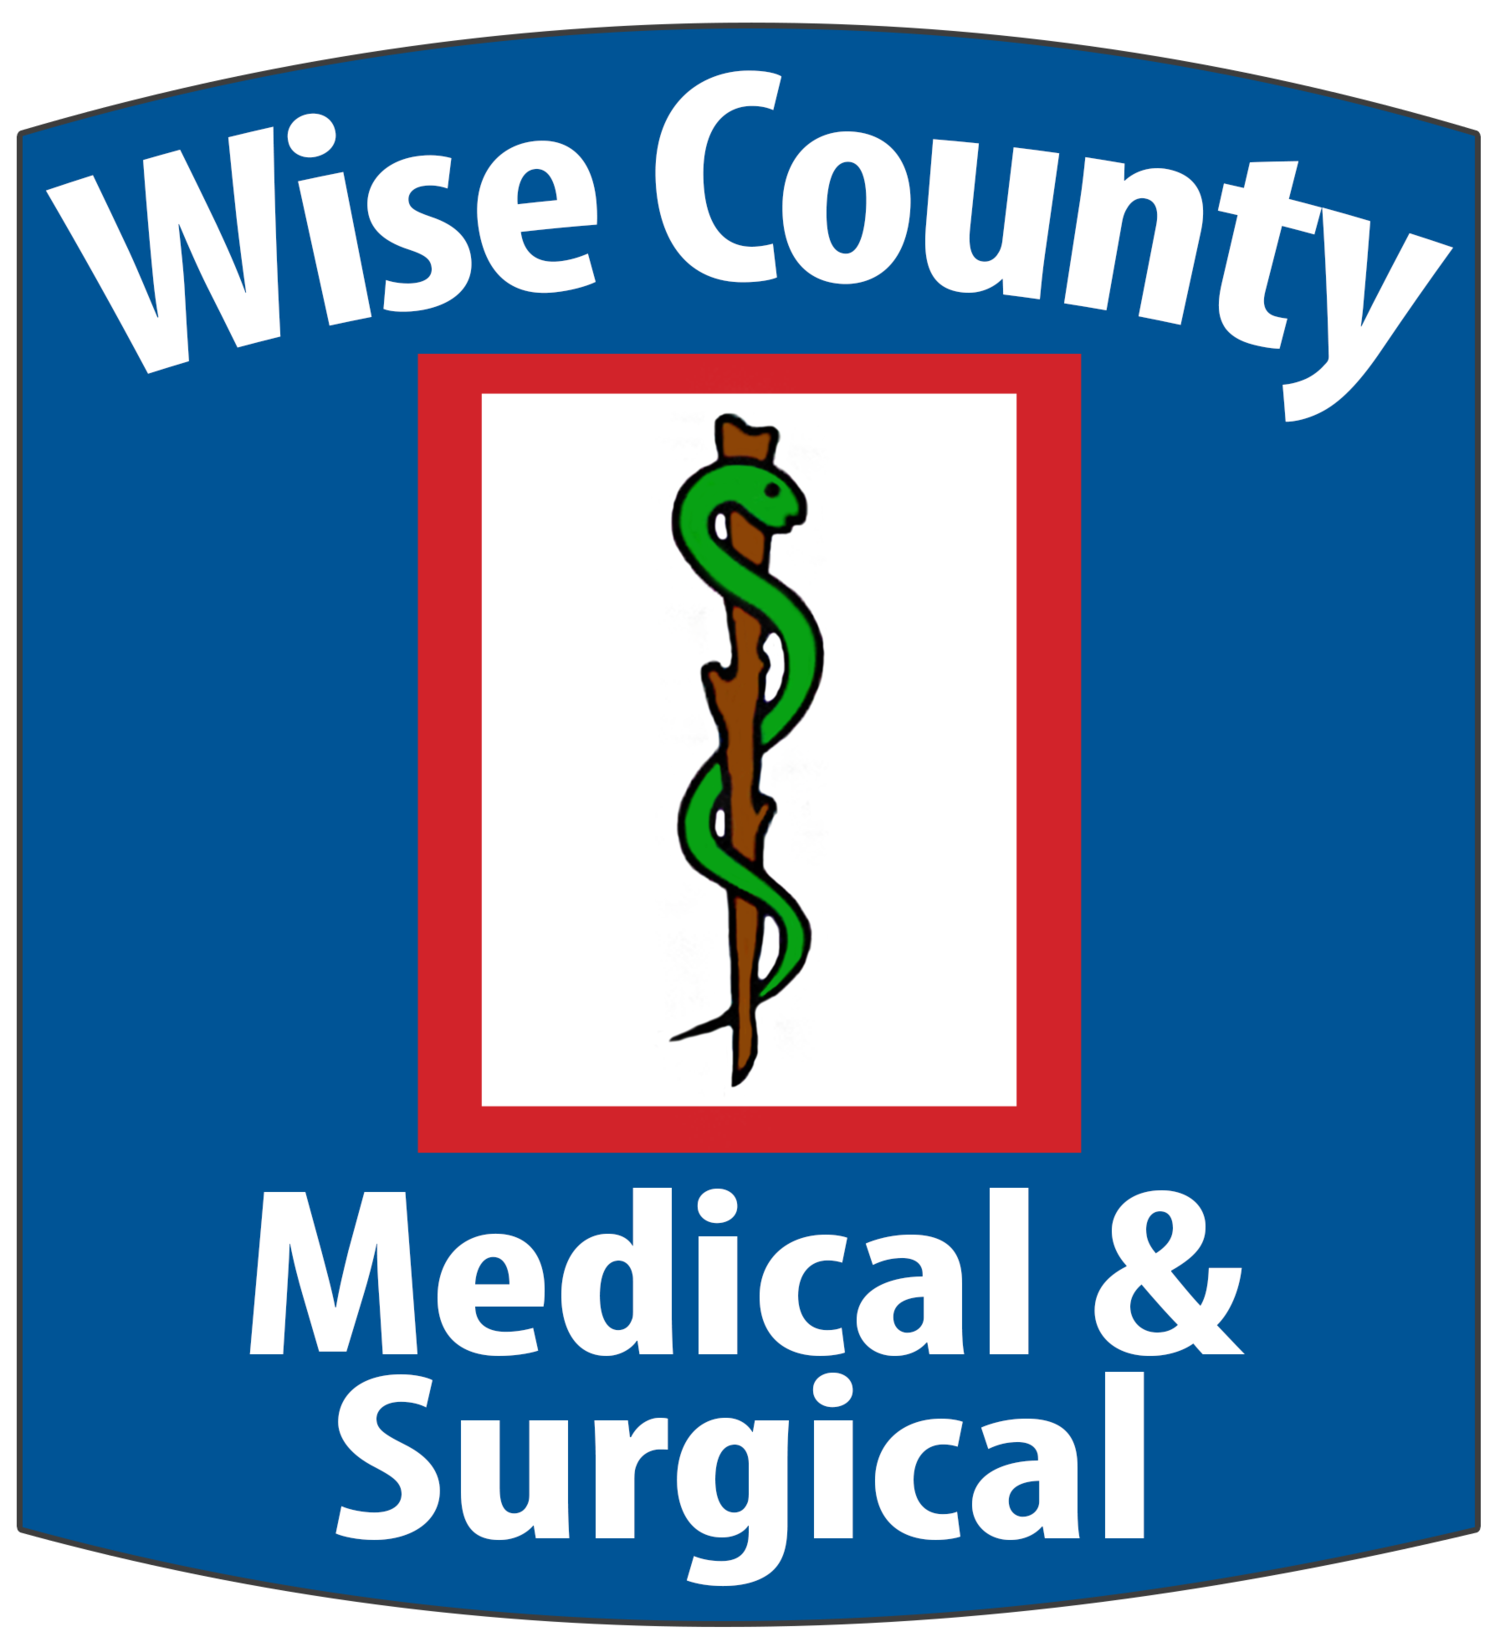 Wise County Medical & Surgical